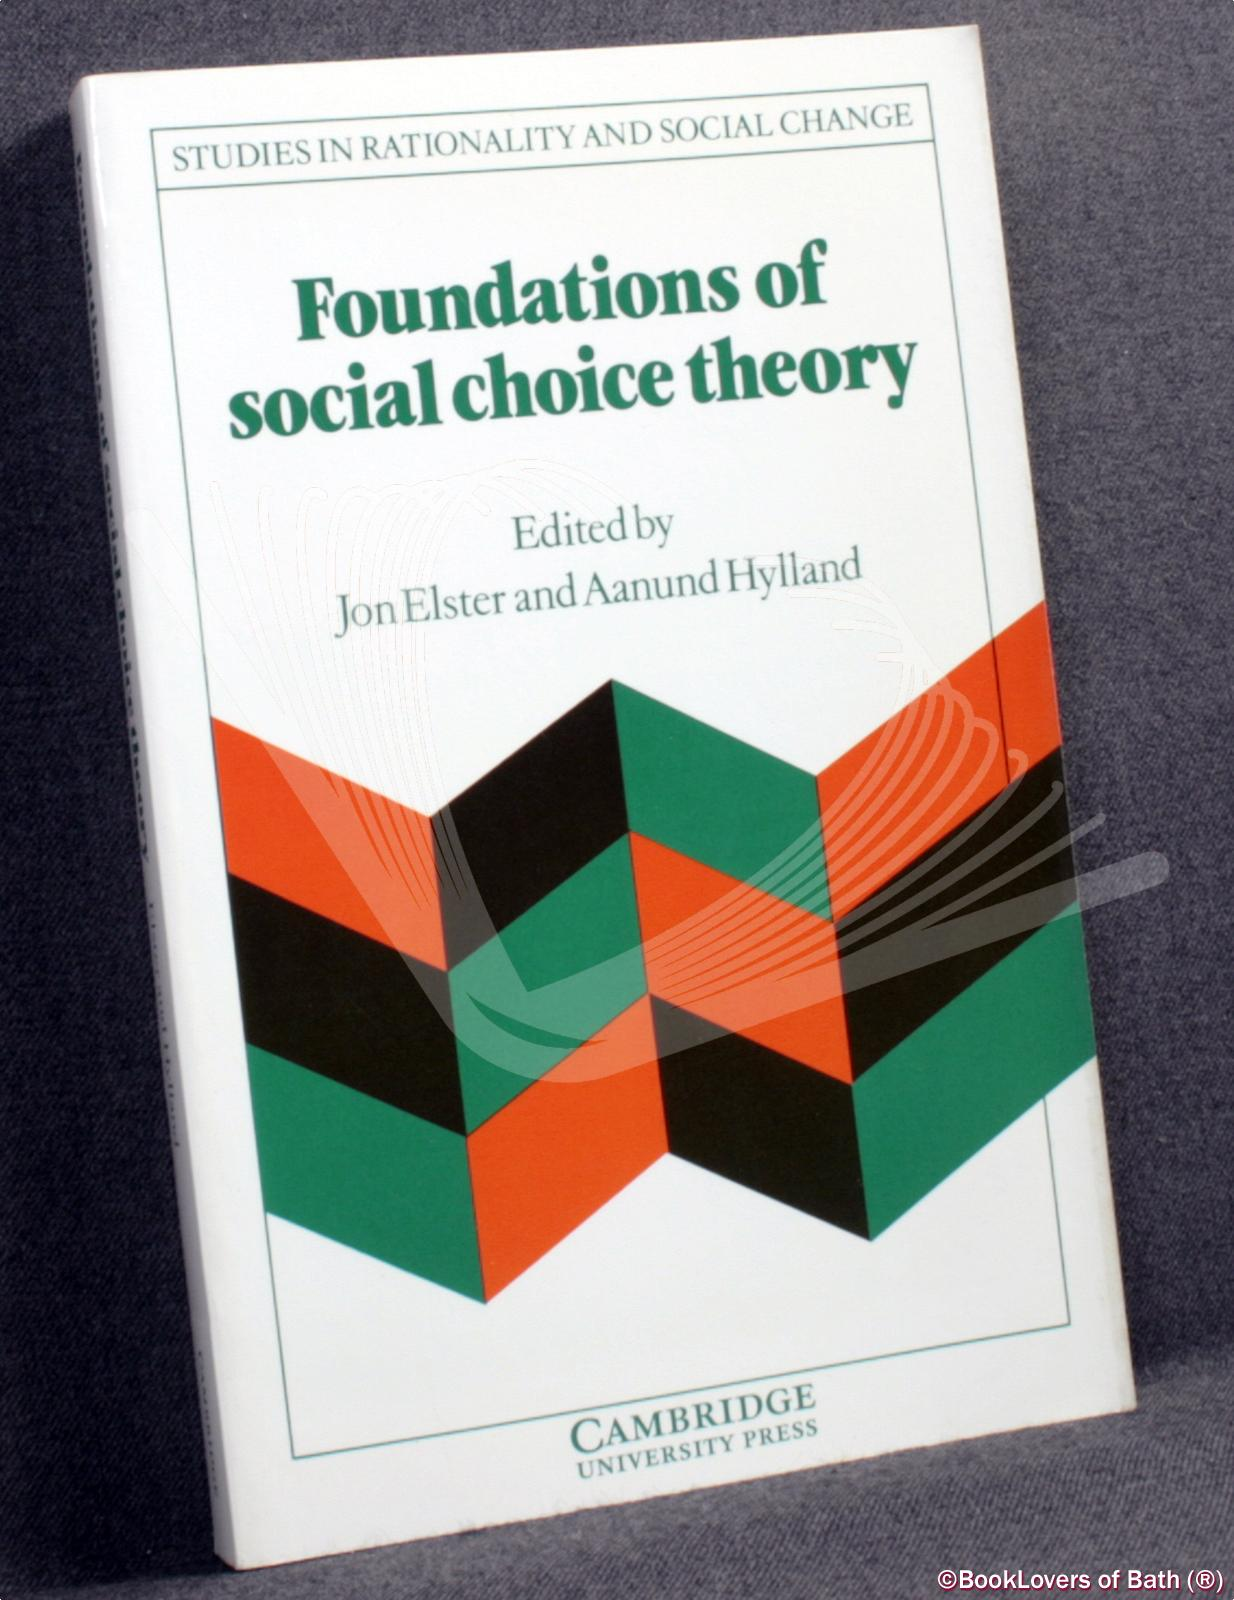 Foundations of Social Choice Theory - Edited by Jon Elster & Aanund Hylland